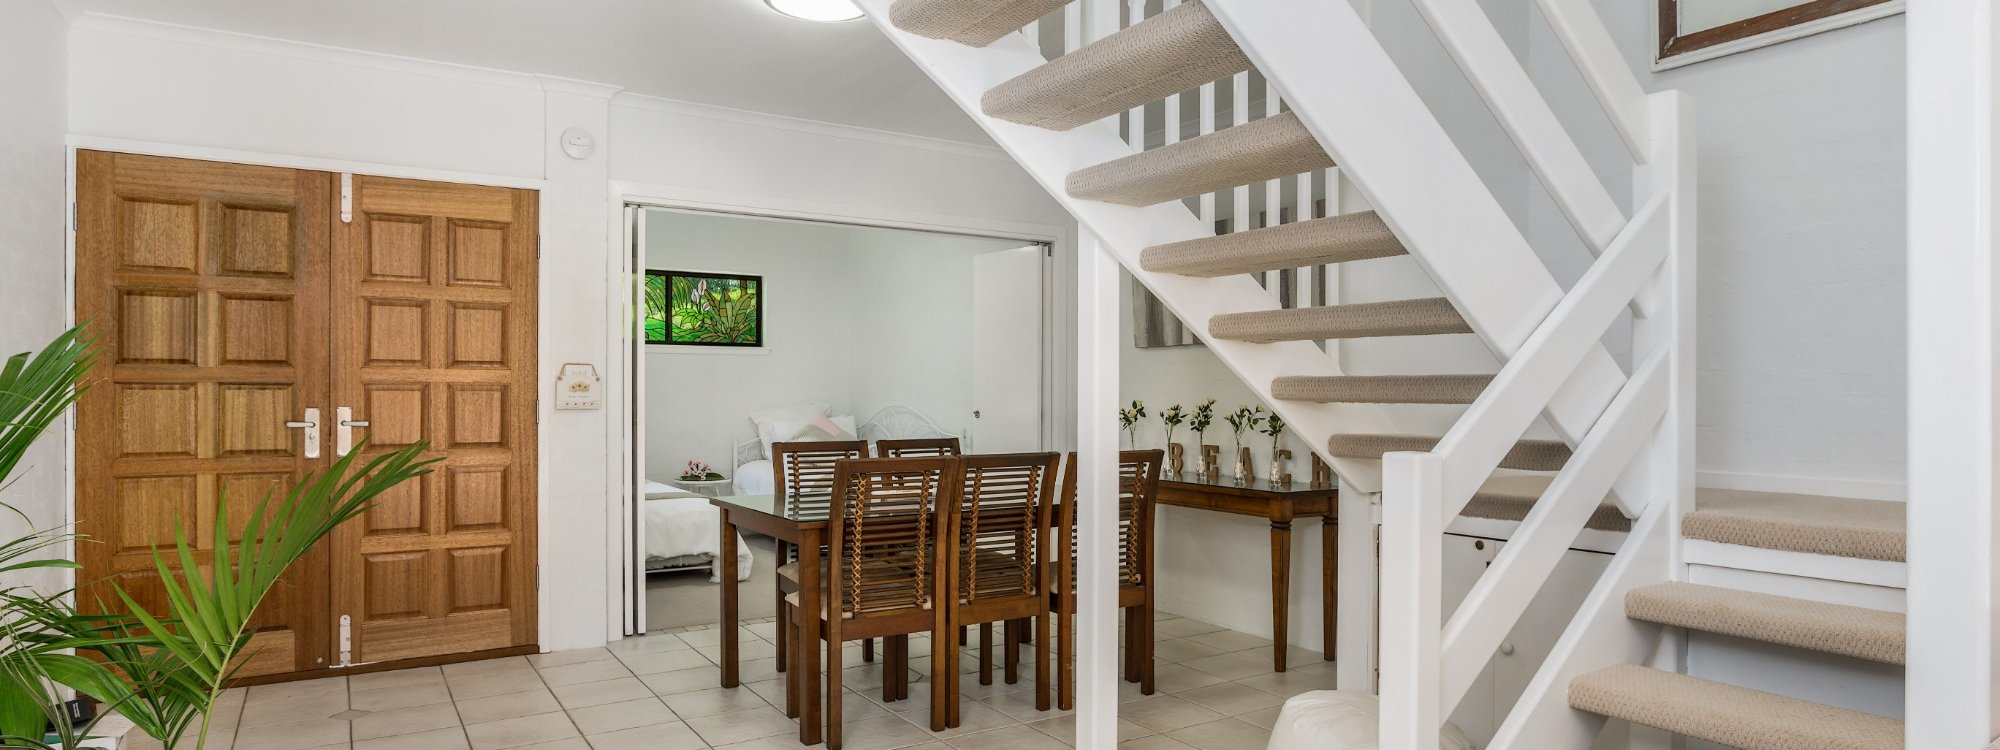 Mango Tree - Byron Bay - Dining table and stairs